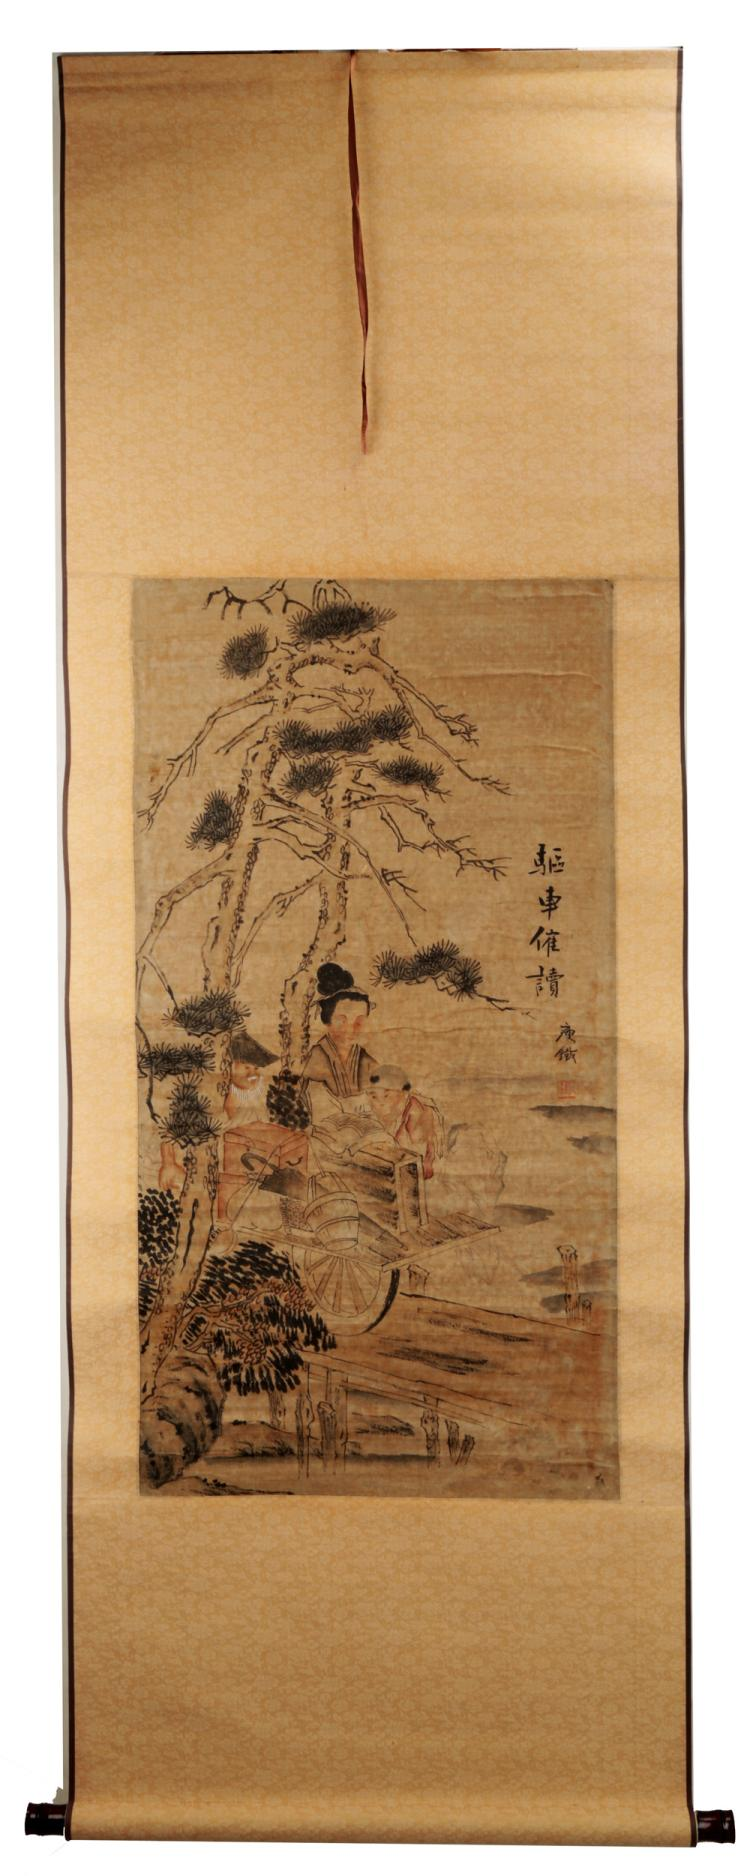 SIGNED QIAN SHOUTIE (1867-1967). A INK AND COLOR ON PAPER HANGING SCROLL PAINTING. H098.